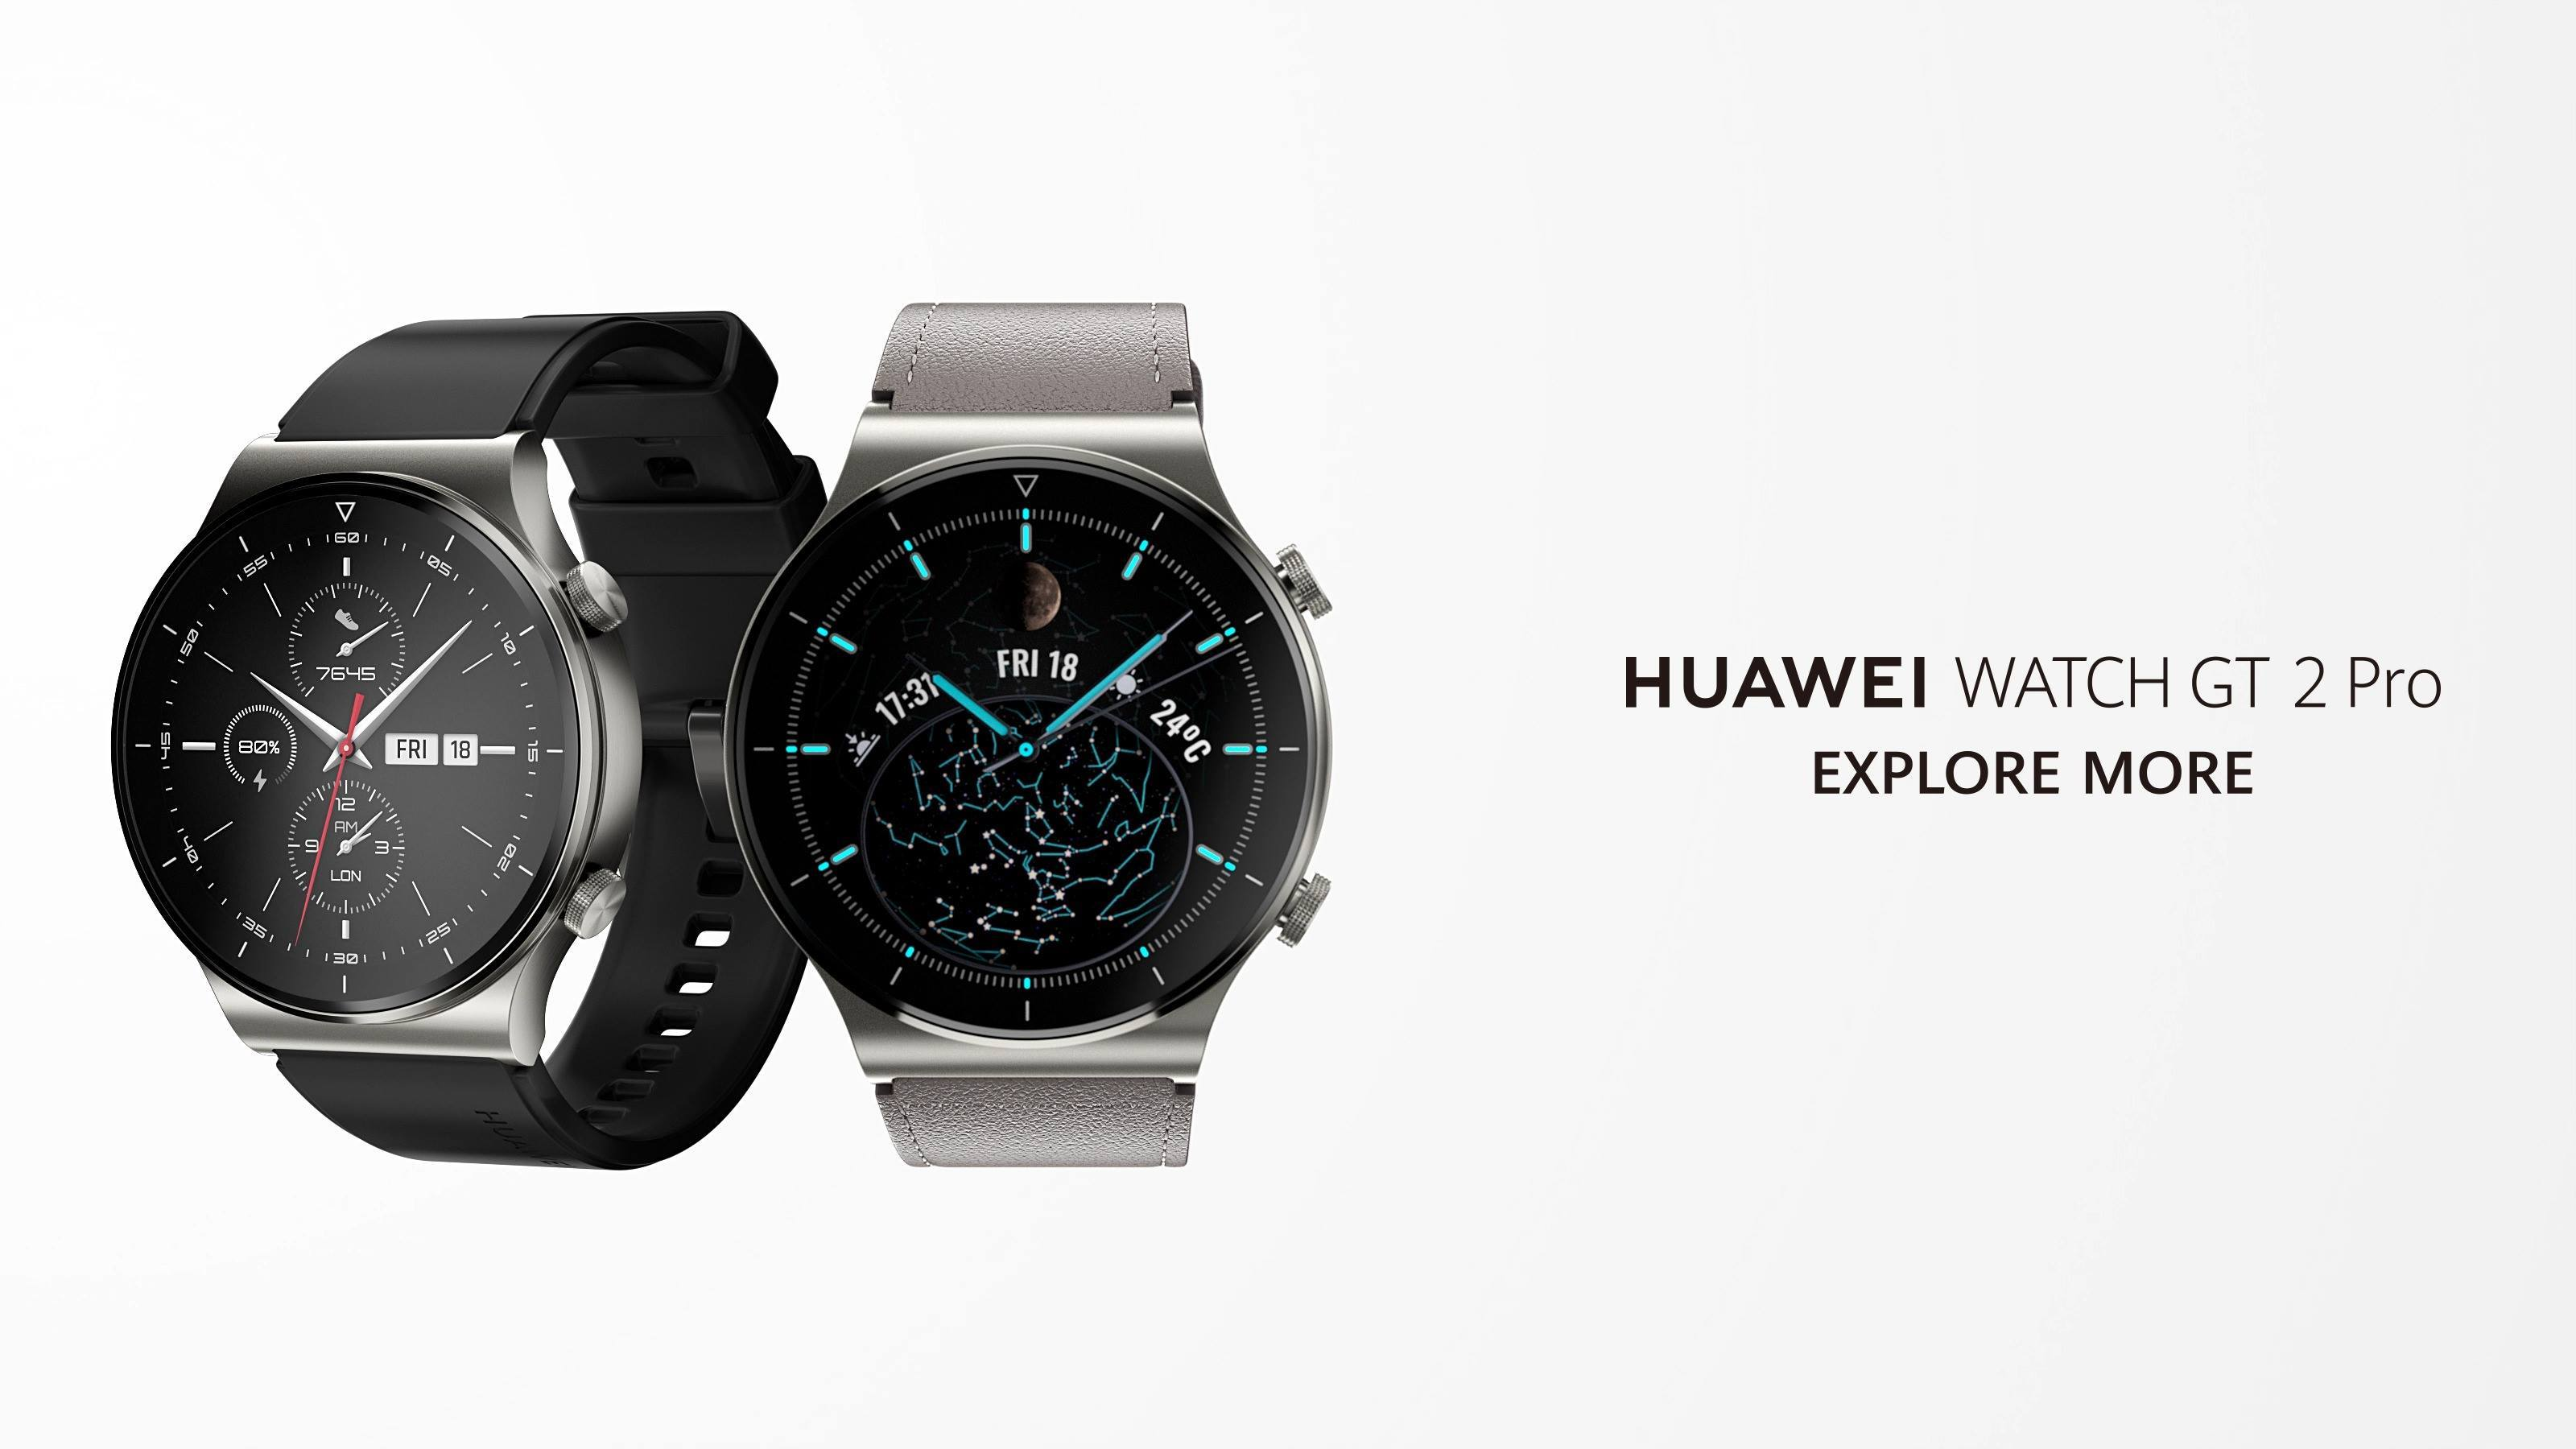 For those who want to Explore More, #HUAWEIWATCHGT2Pro is the perfect companion🙏